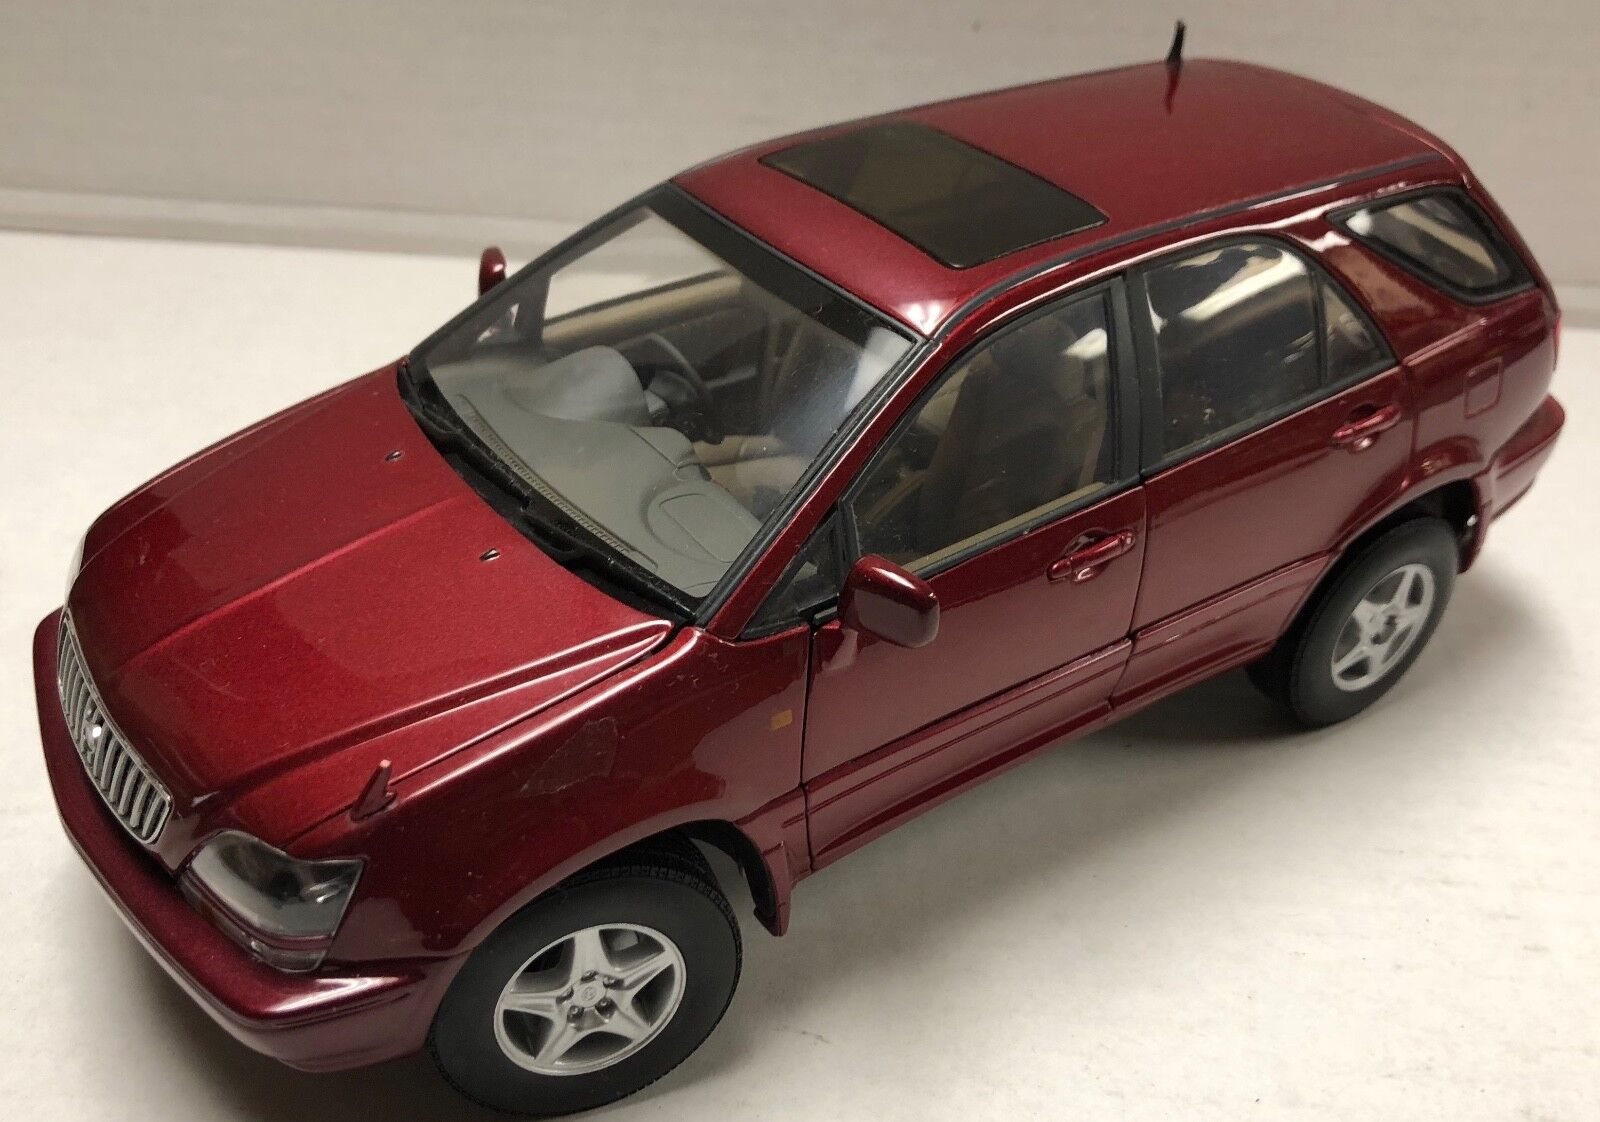 AUTOart Toyota Harrier or Lexus RX3001 18 Die Cast